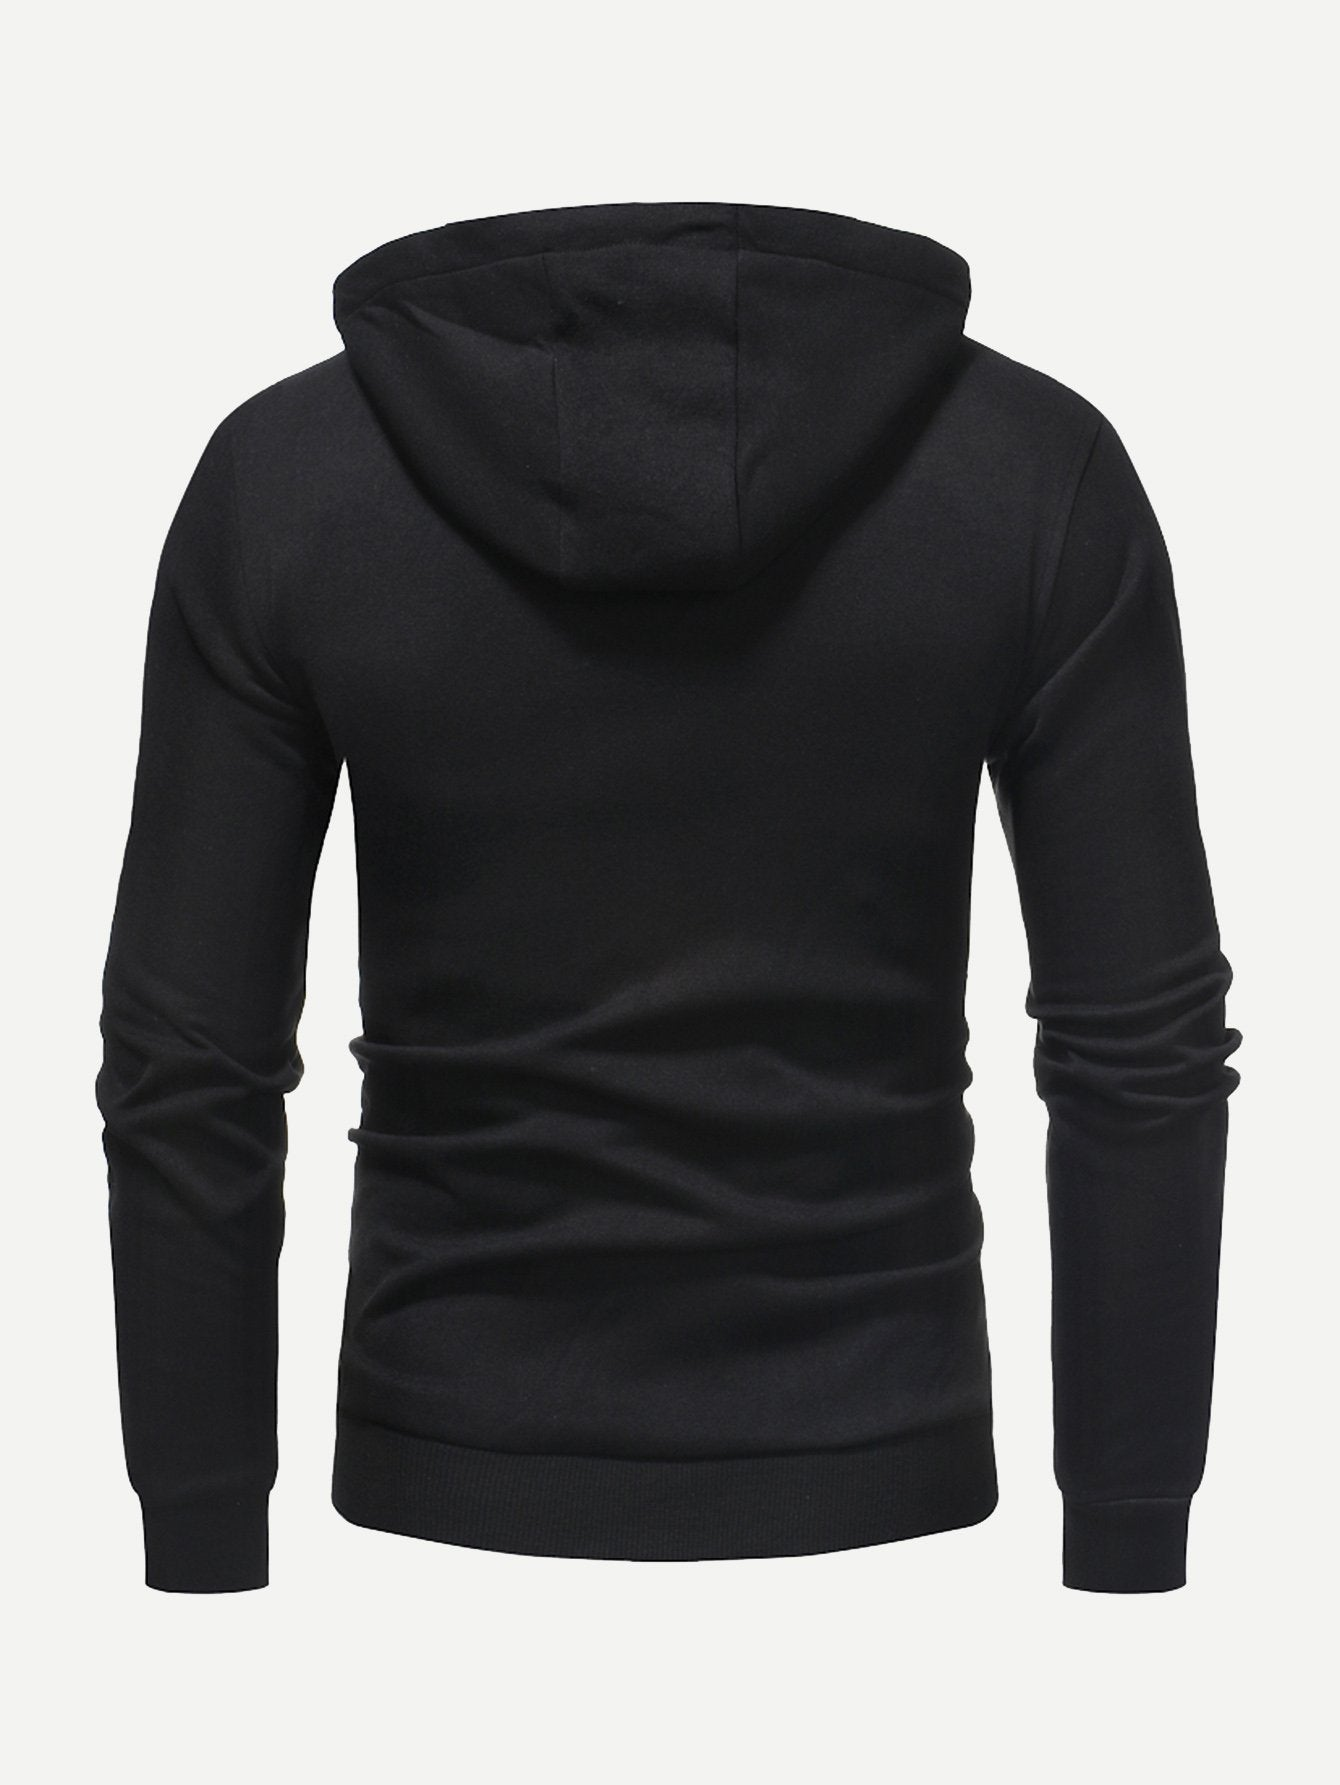 Men Solid Hooded Sweatshirt-Sunshine's Boutique & Gifts